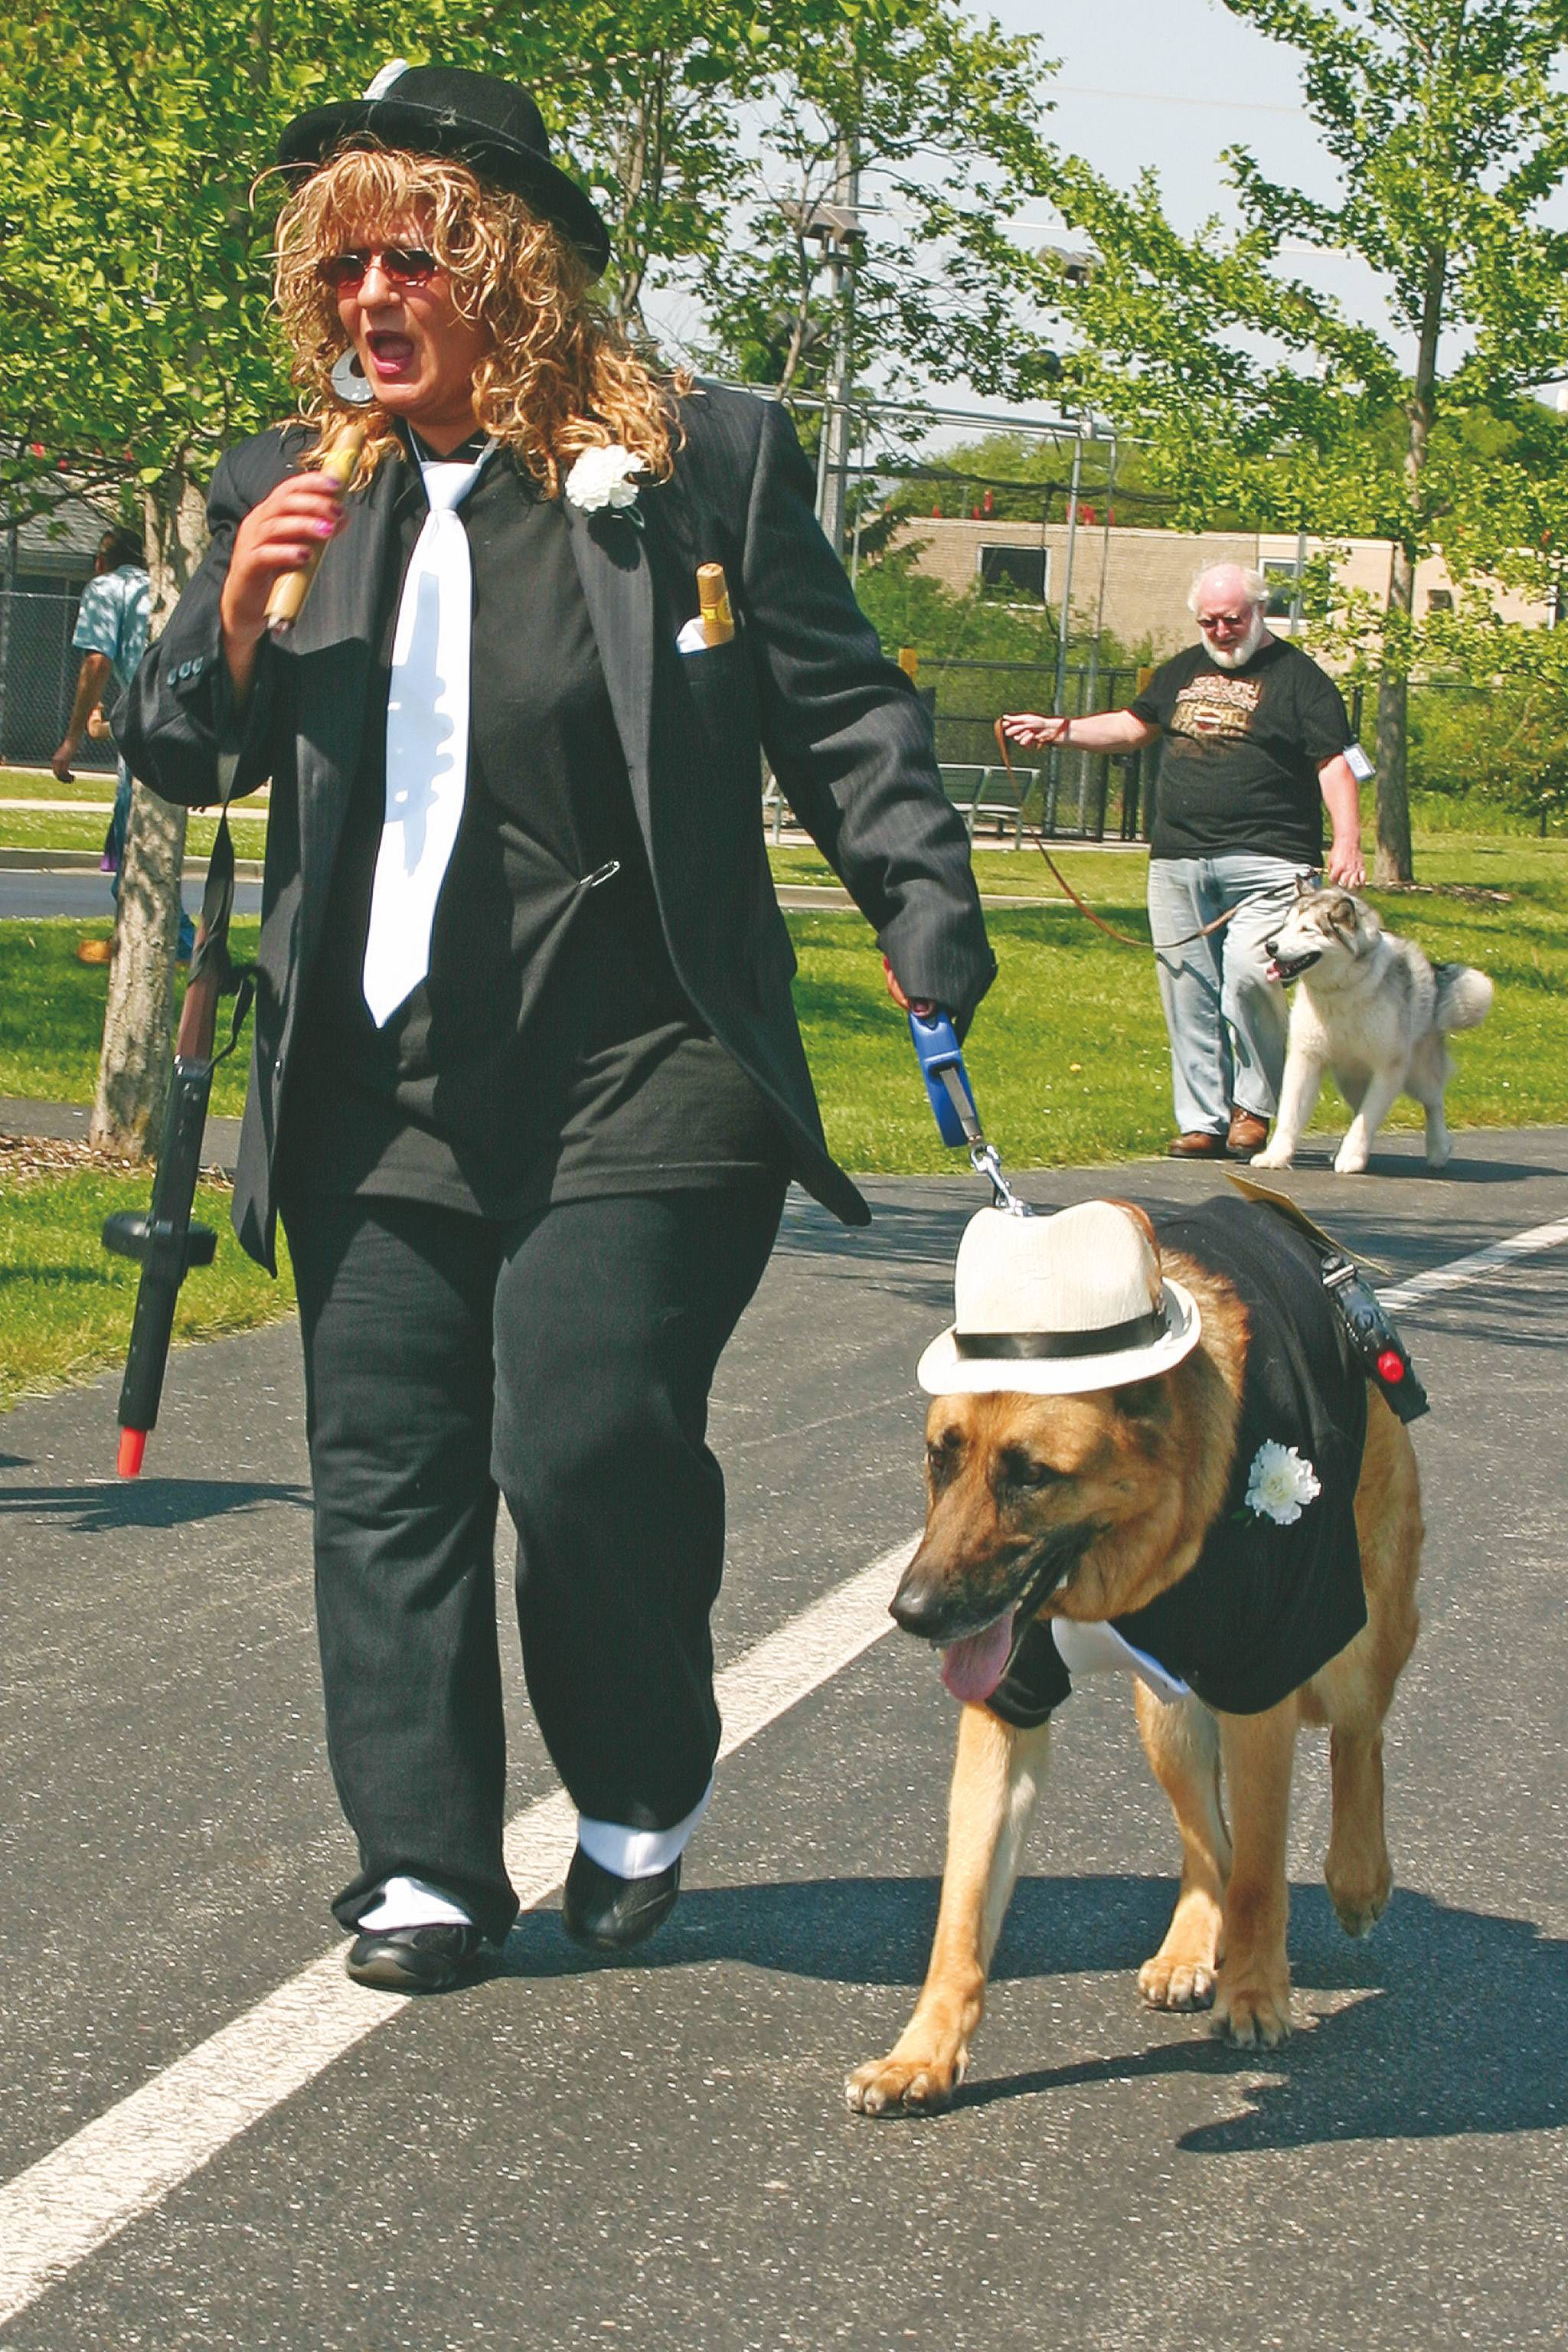 Dogs to be allowed in Des Plaines parks starting Aug. 1